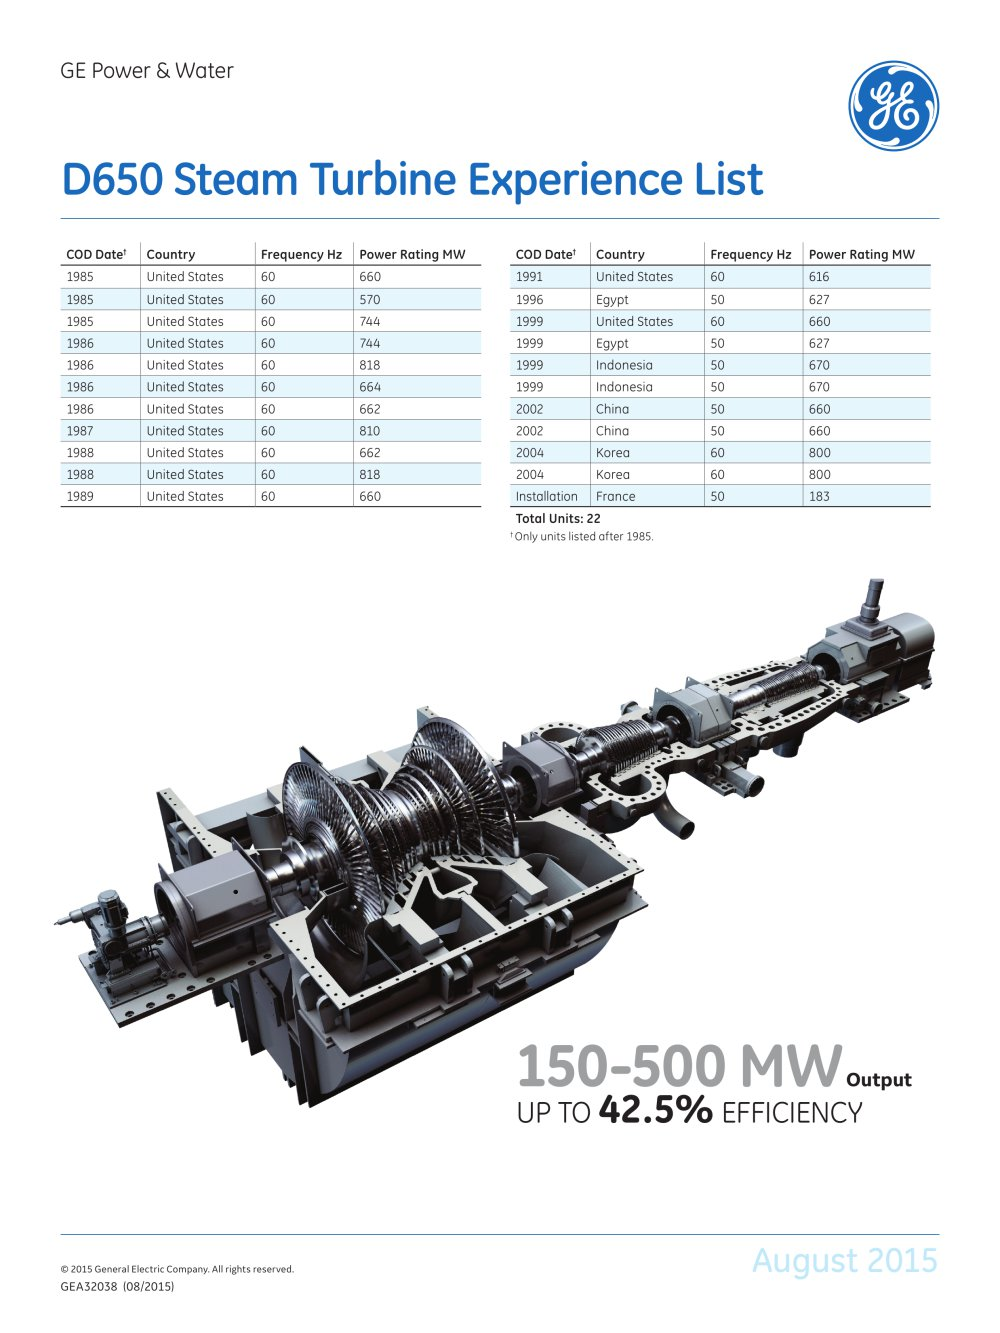 D650 Steam Turbine Experience List - 1 / 1 Pages